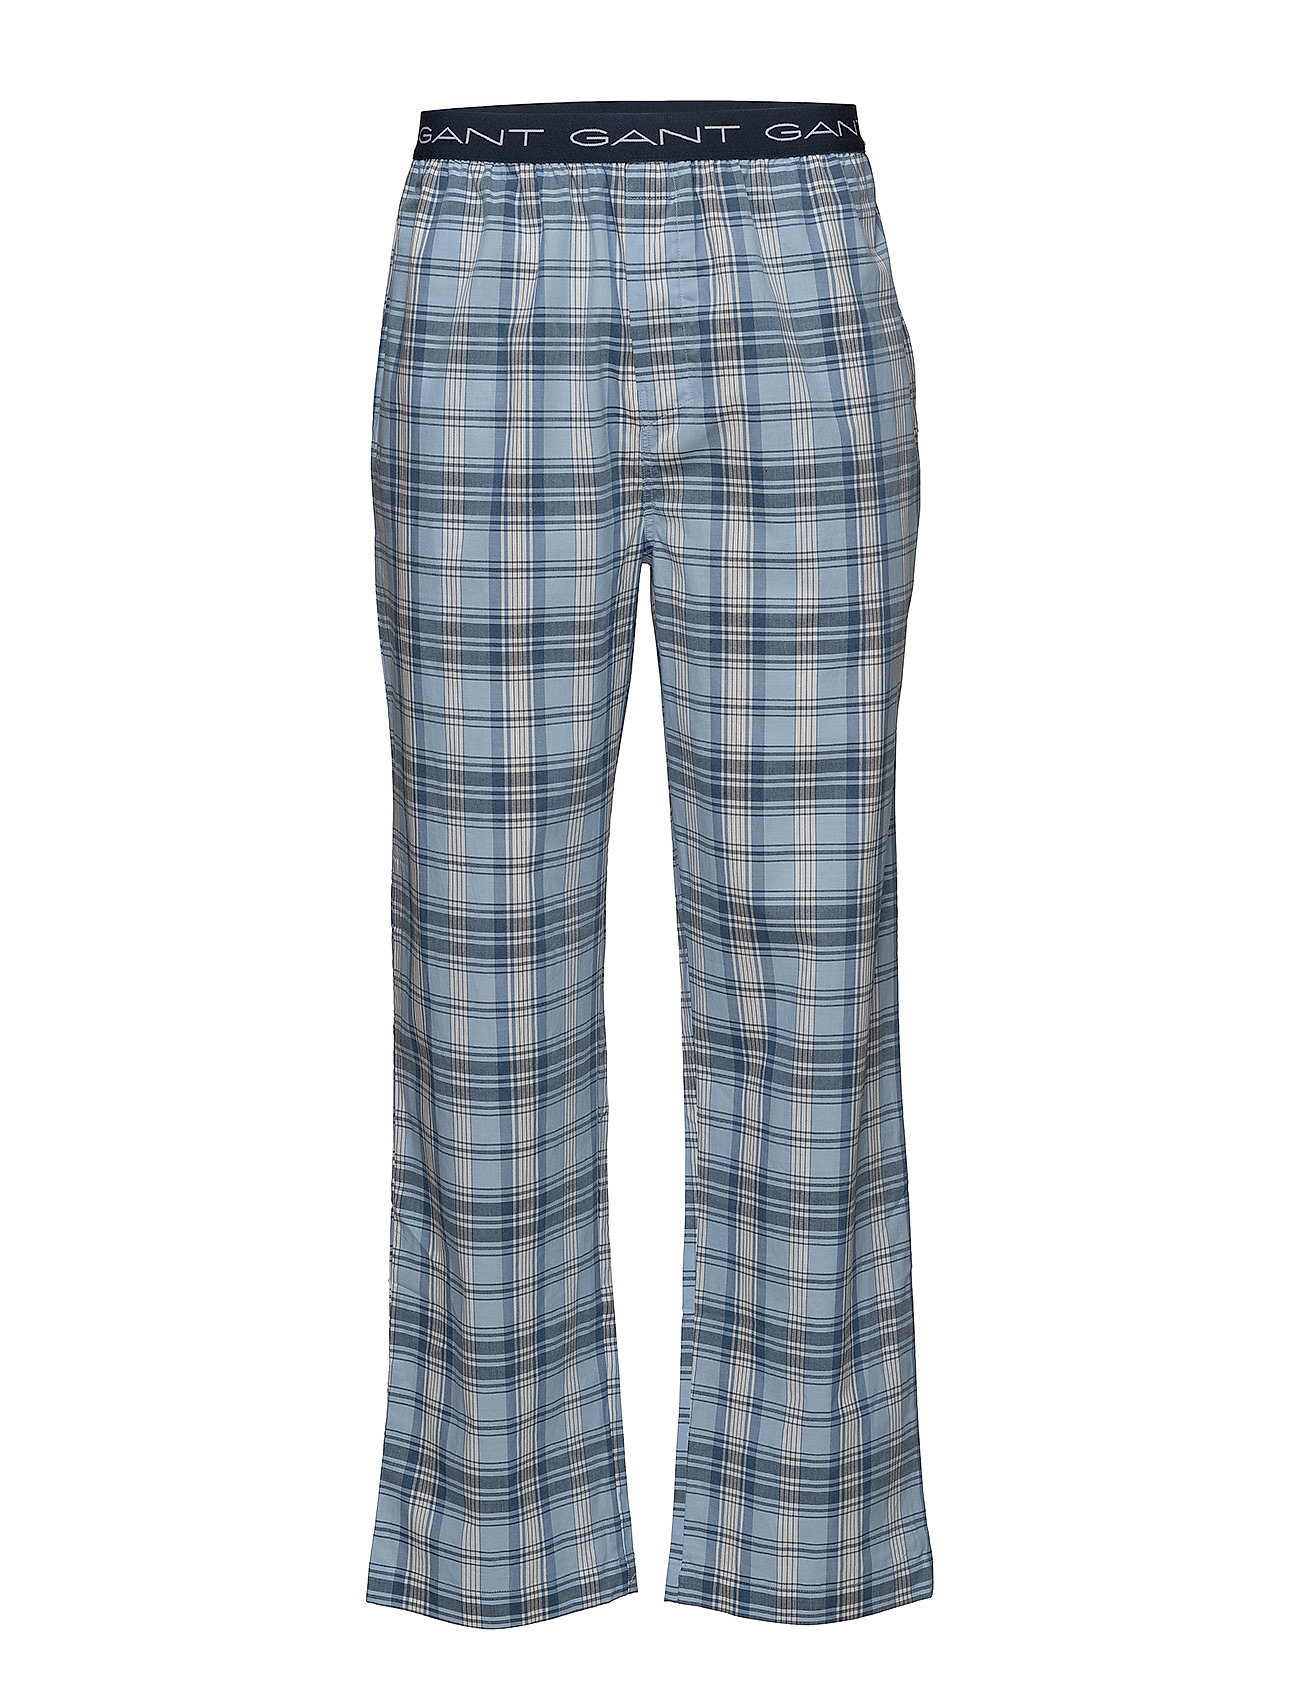 Blue Check Pajama Pants - Navy GANT Good Service Cheap With Mastercard Buy Cheap Extremely Browse Clearance 2018 bwyZq